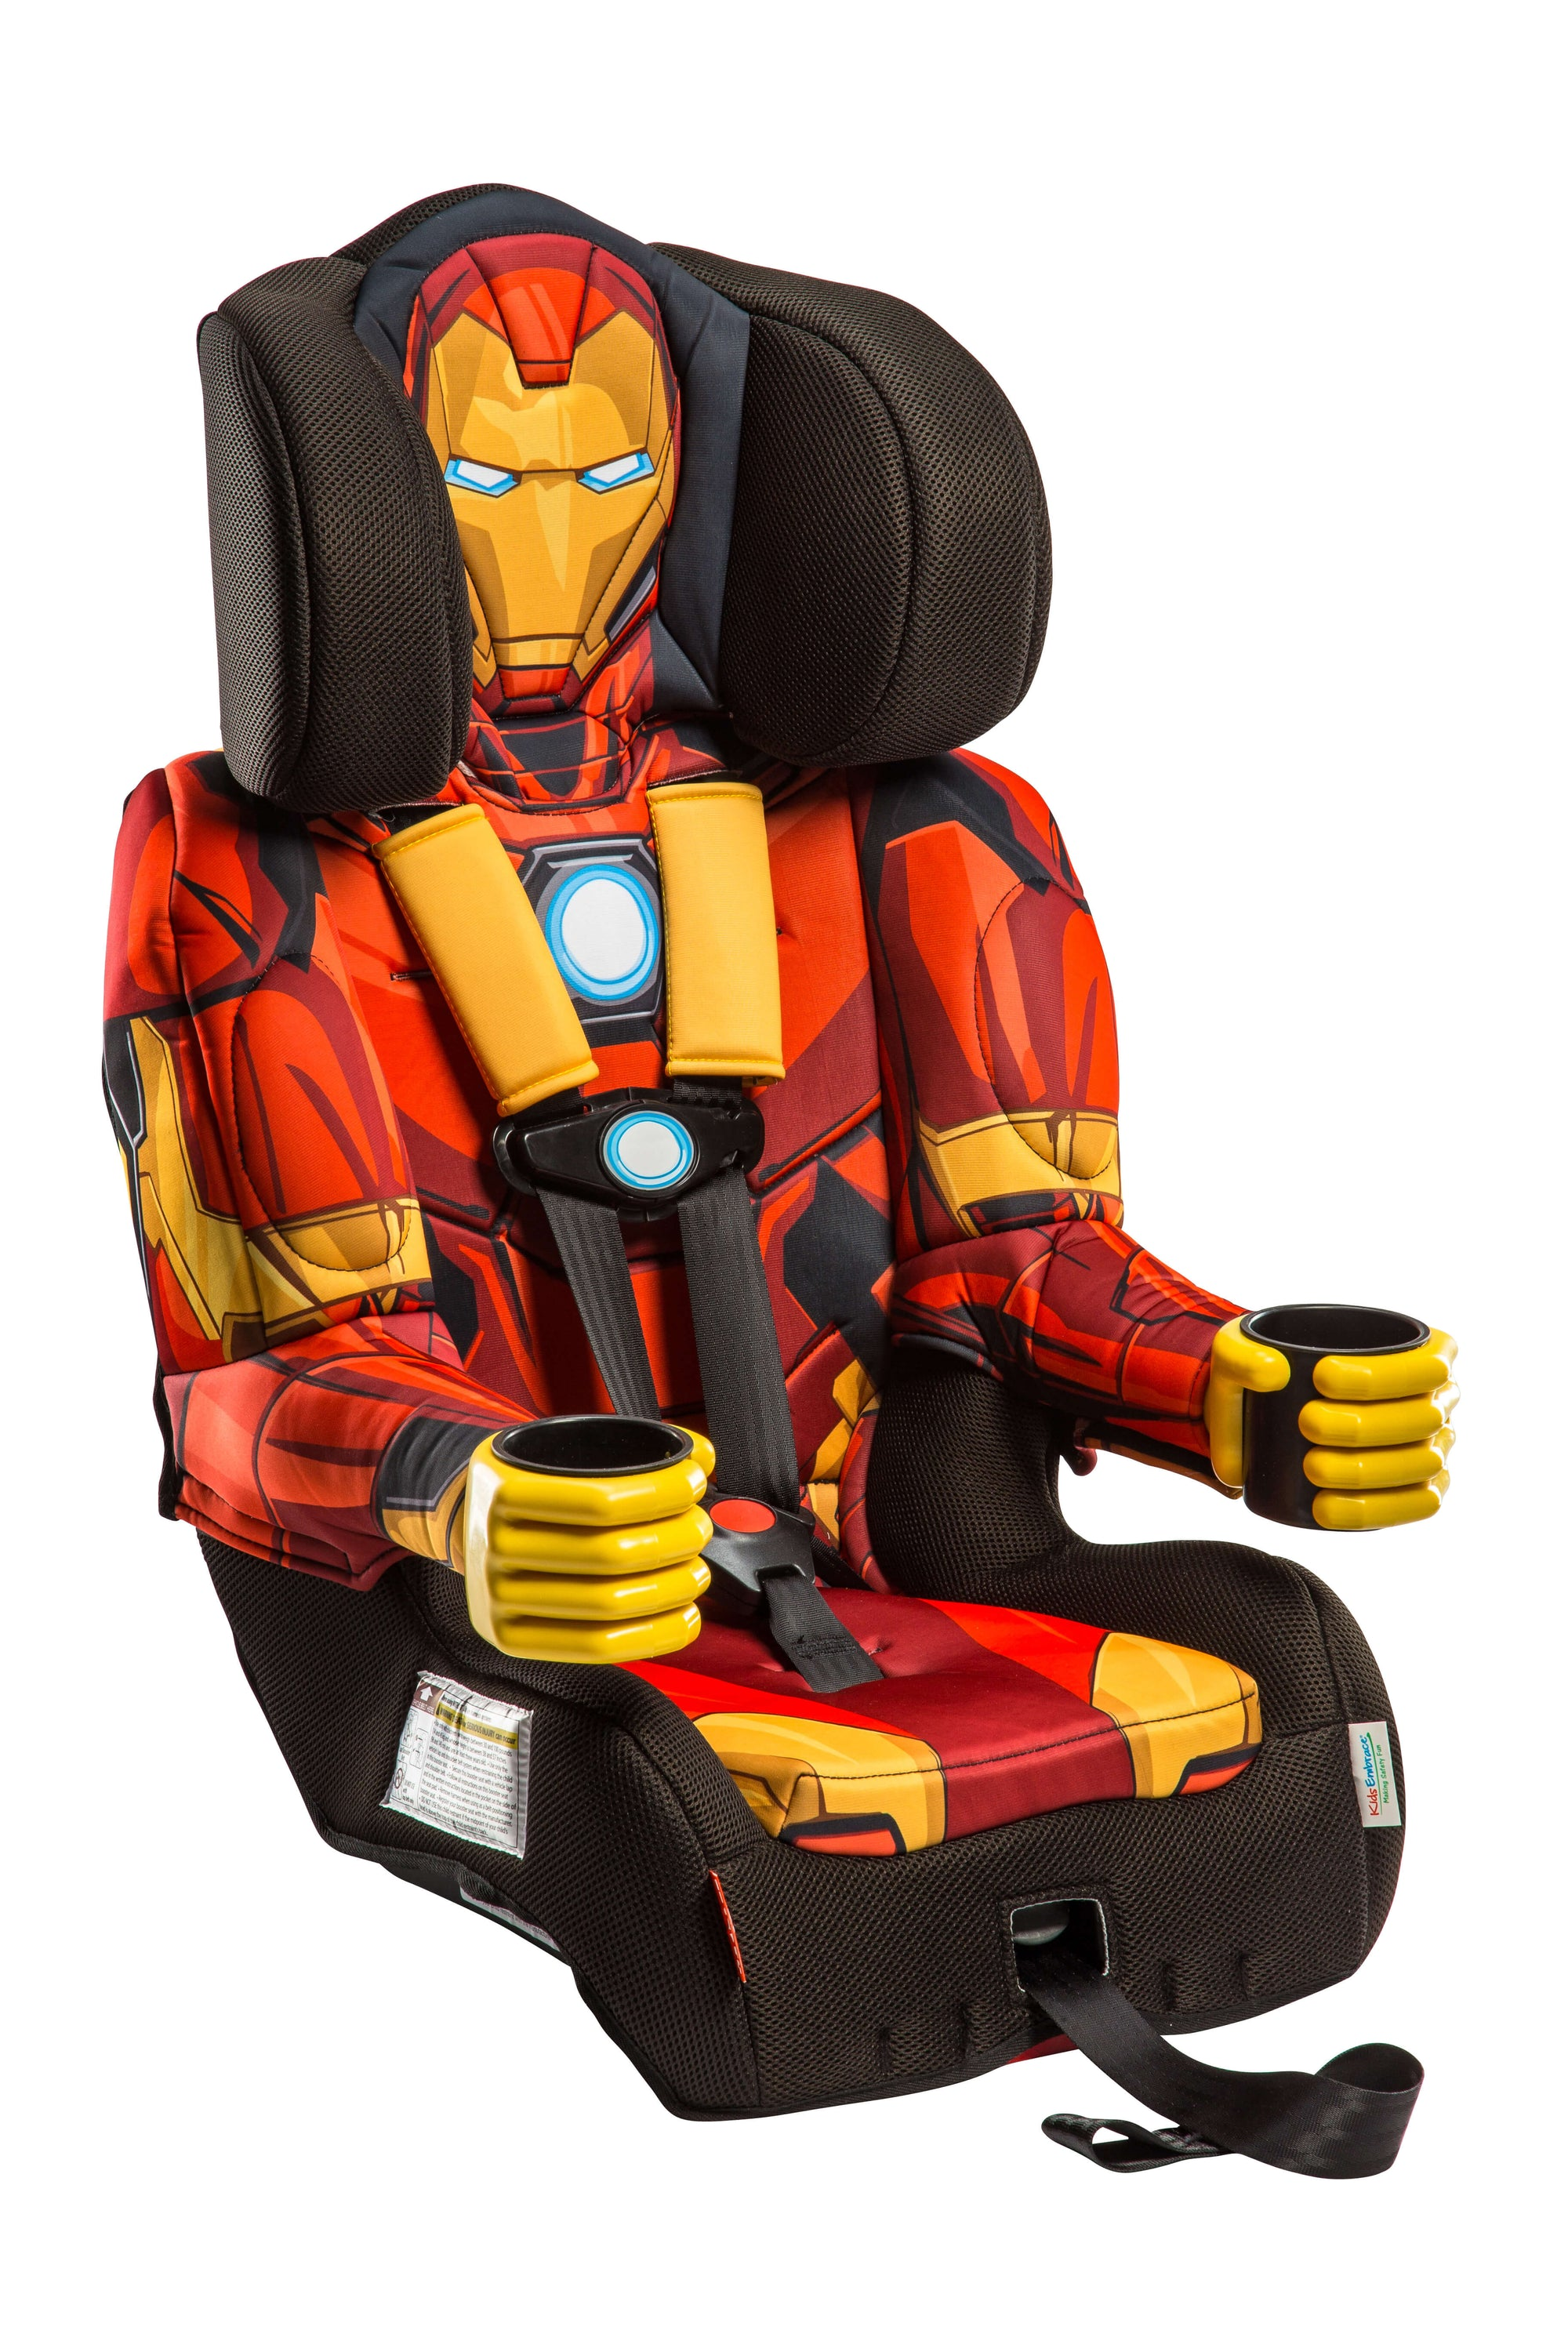 Astonishing Kids Avengers Iron Man Combo Harness Booster Car Seat Pabps2019 Chair Design Images Pabps2019Com